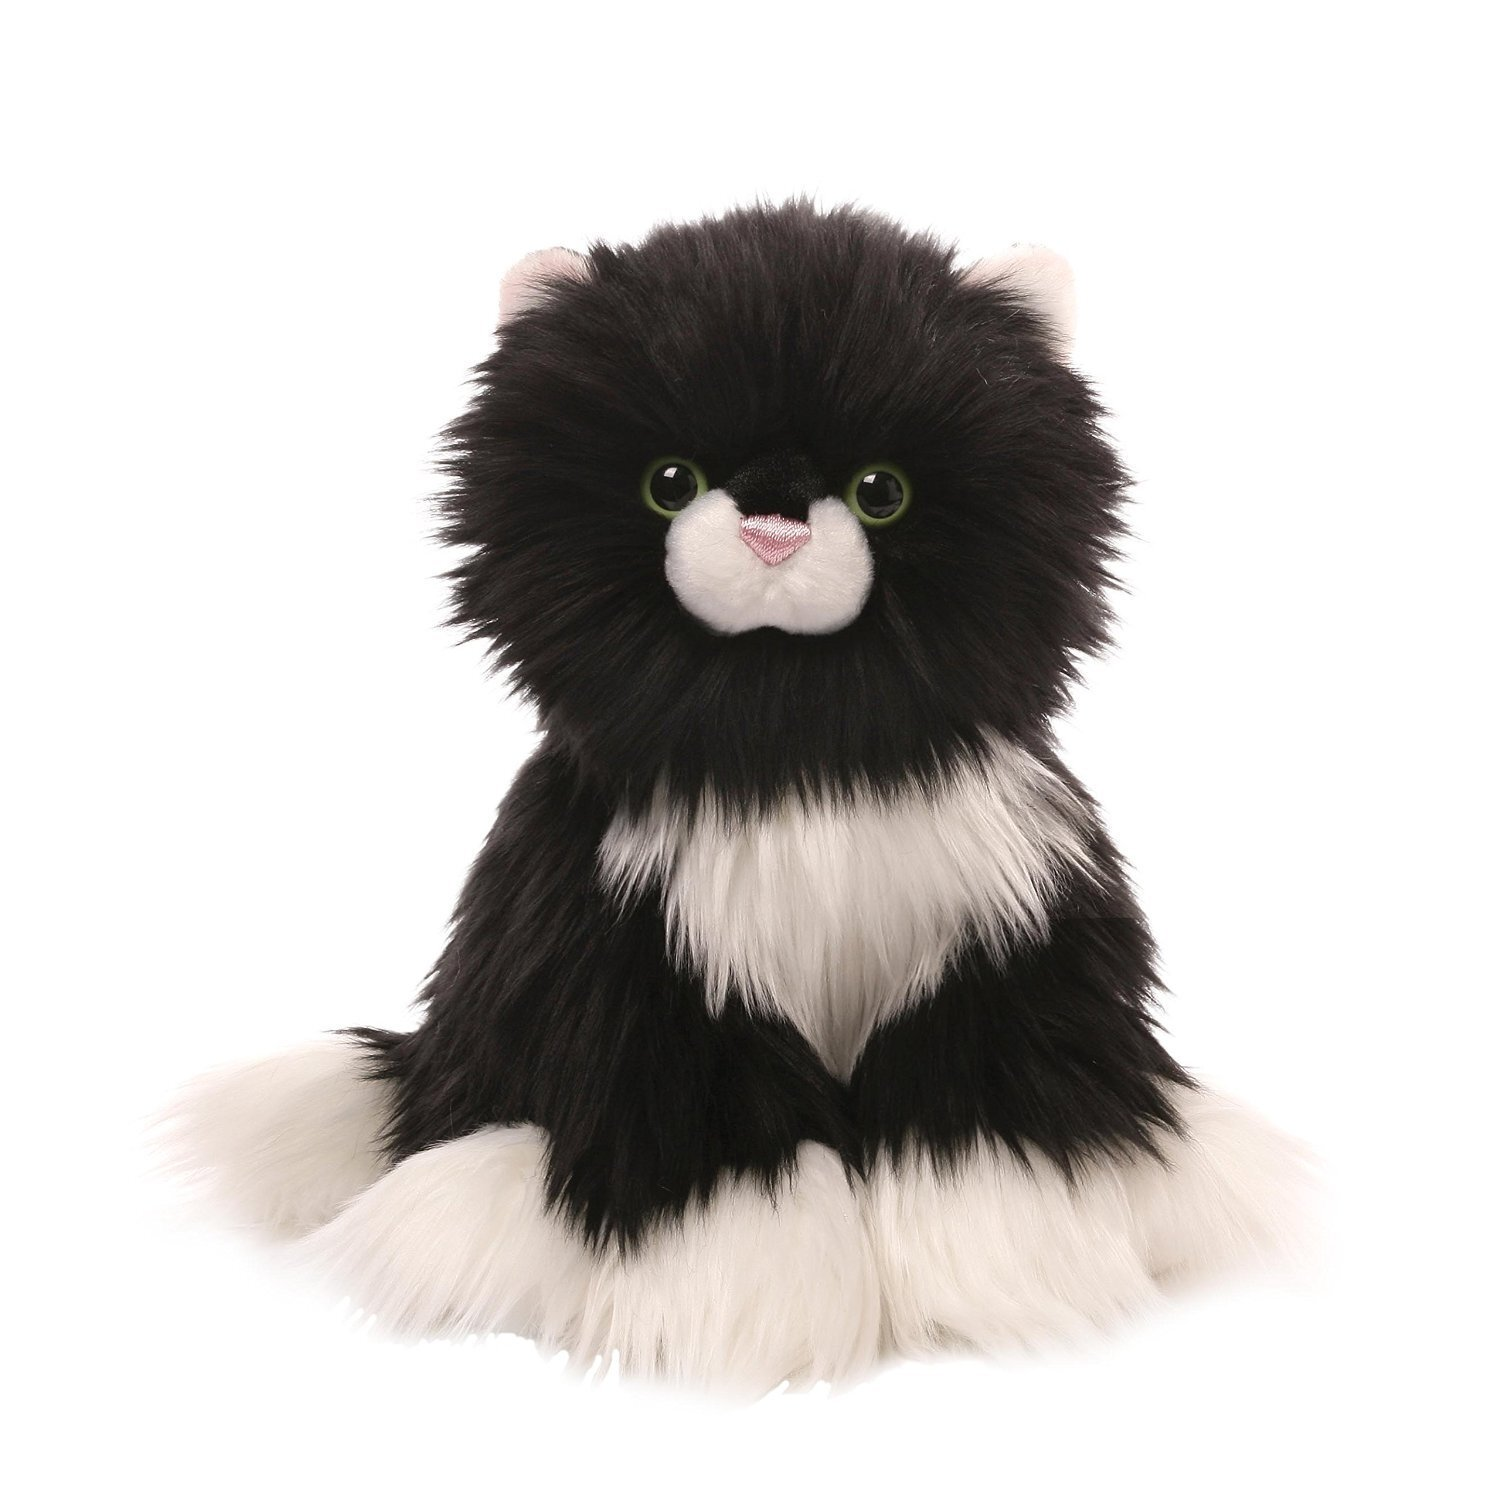 Cat Plush Toy Buy Gund Milan Black And White Cat Plush Toy